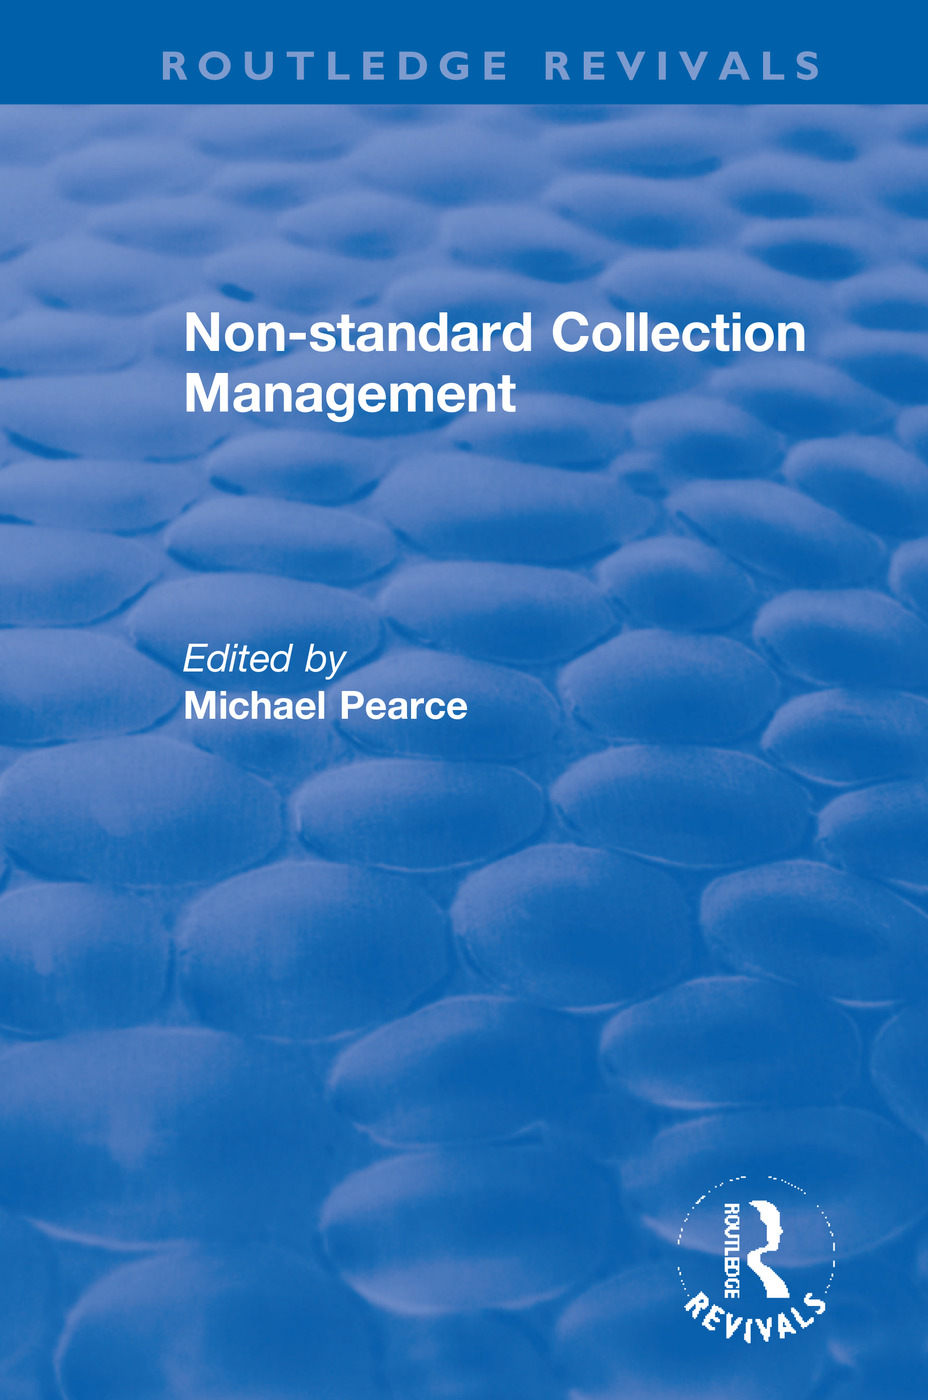 Non-standard Collection Management